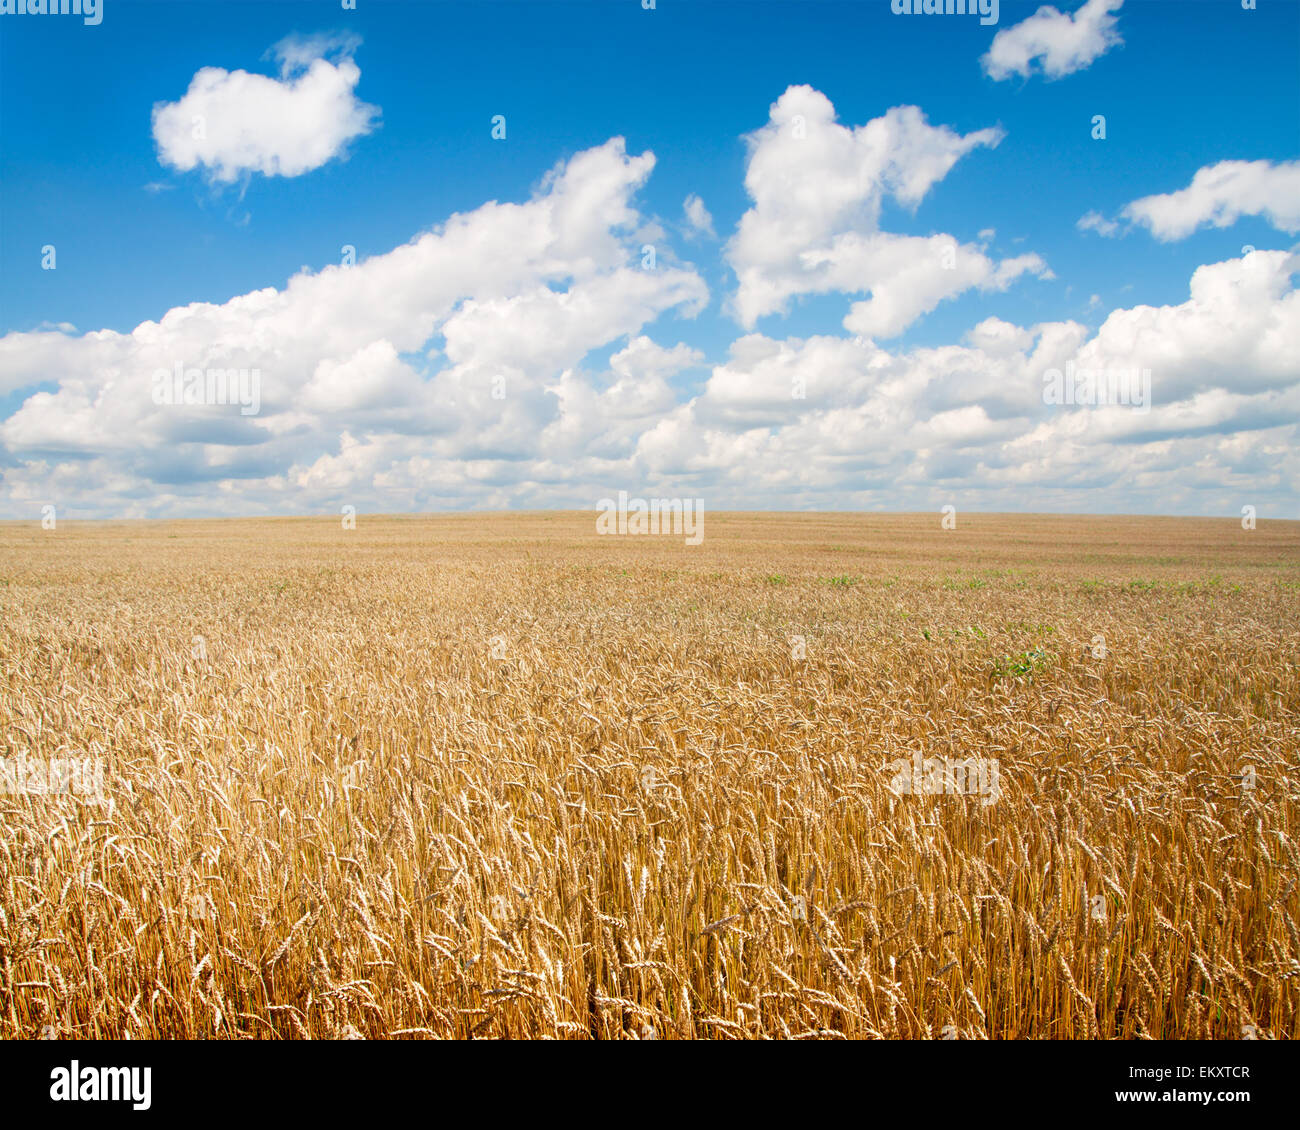 field of wheat and beautiful blue sky - Stock Image